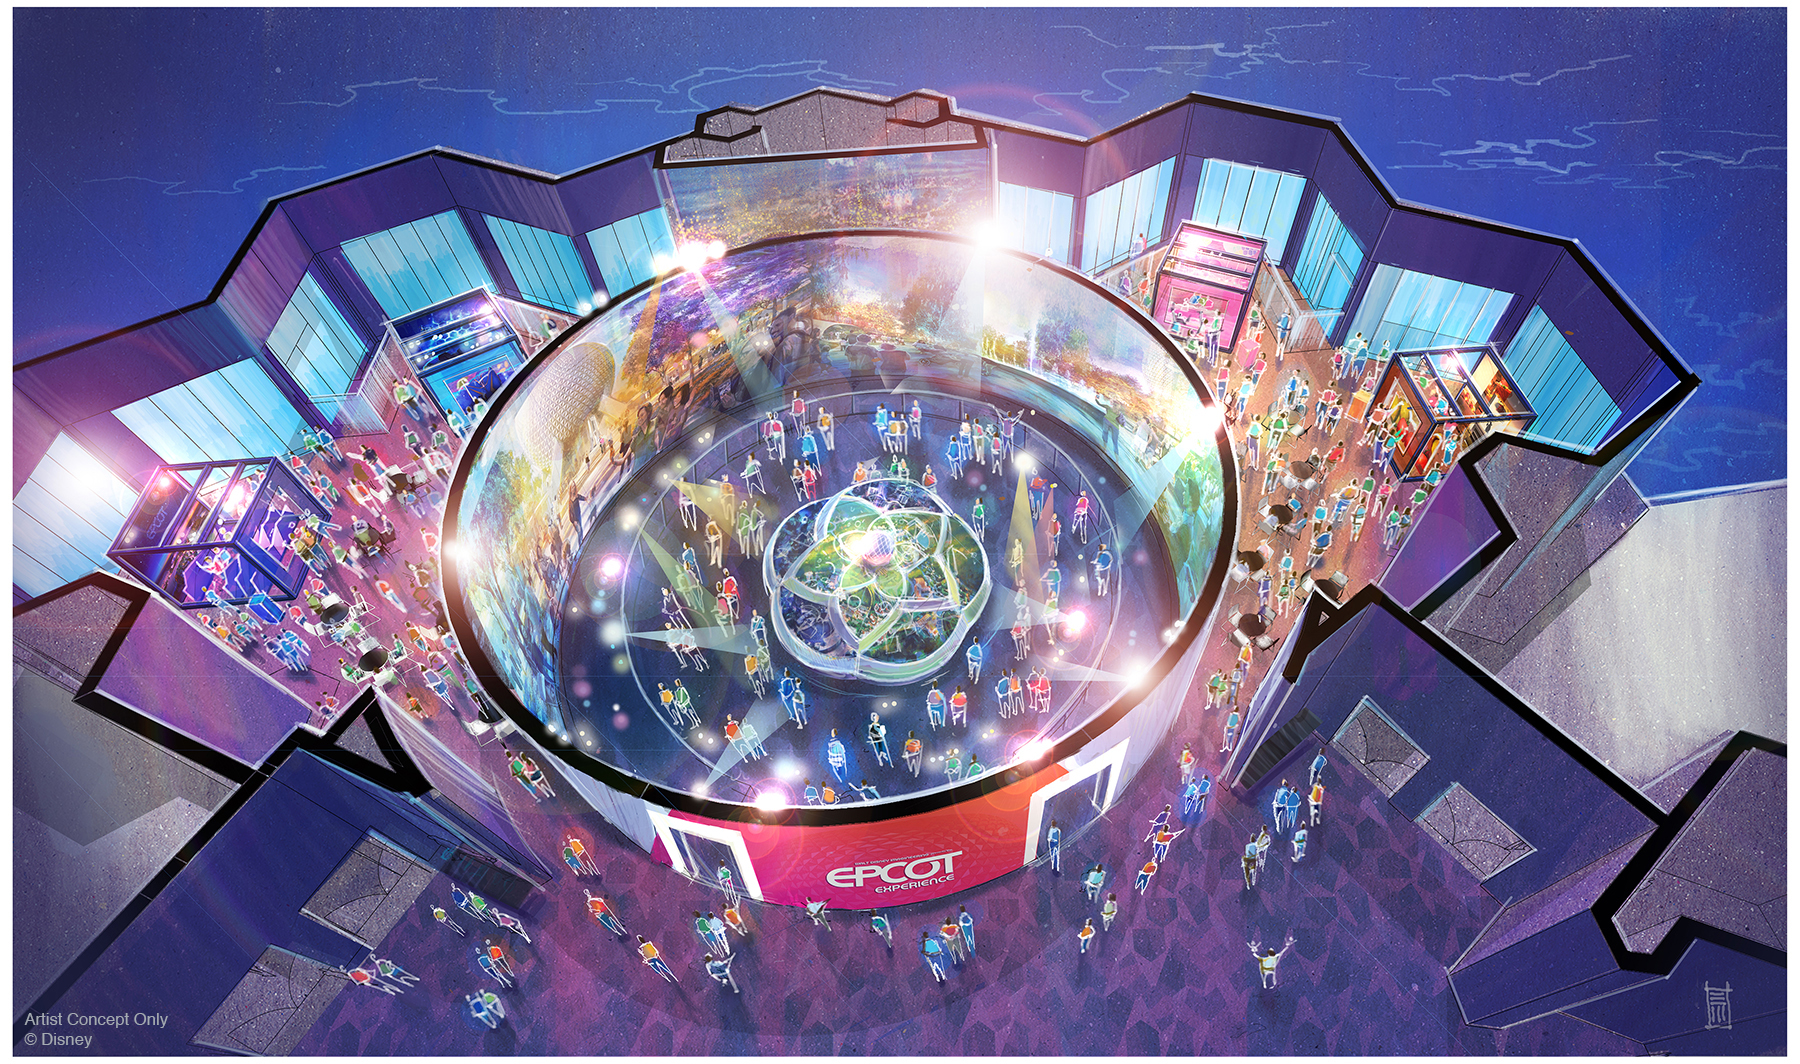 The Epcot Preview Center will open on October 1, 2019